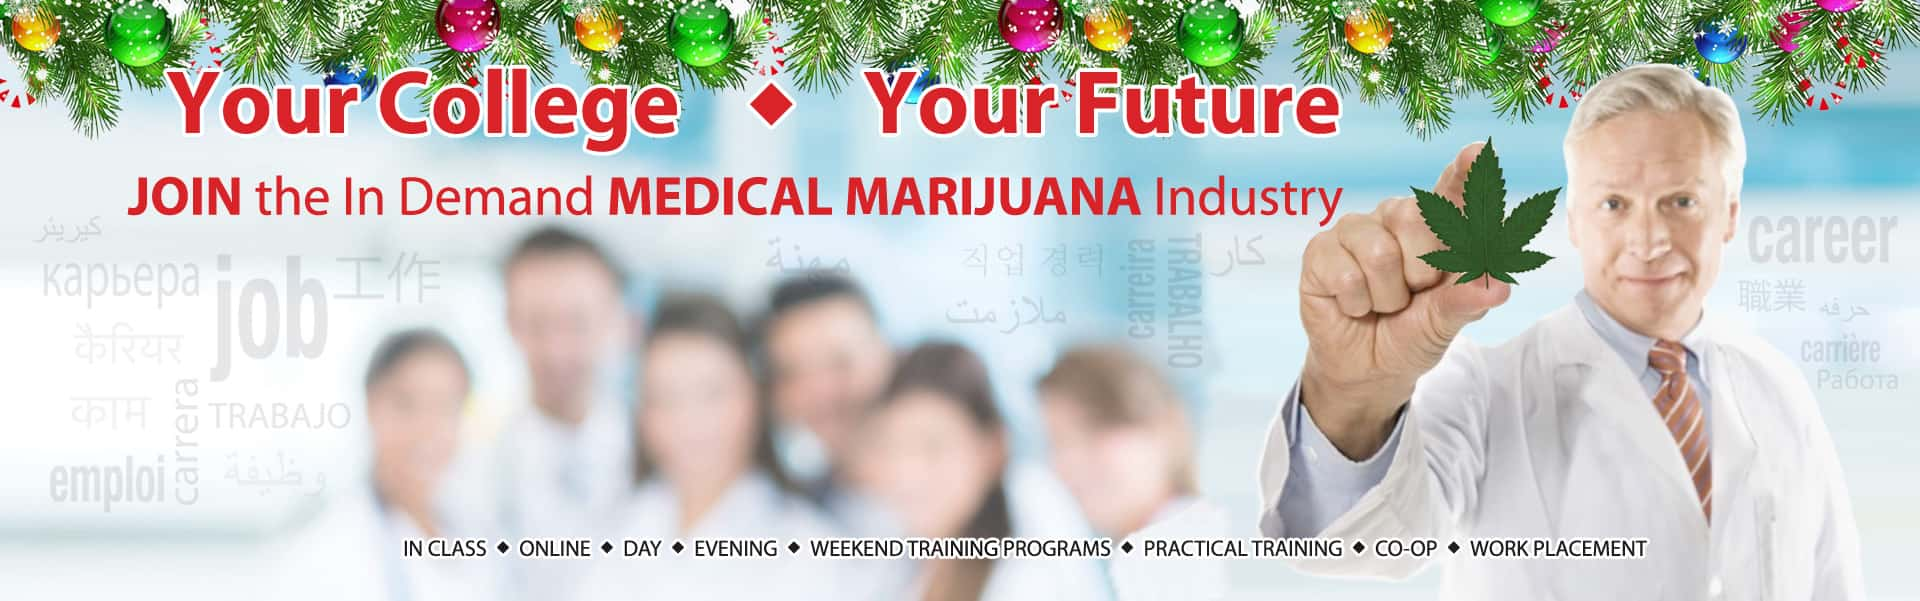 Your-college-clinical-main-christmas 3